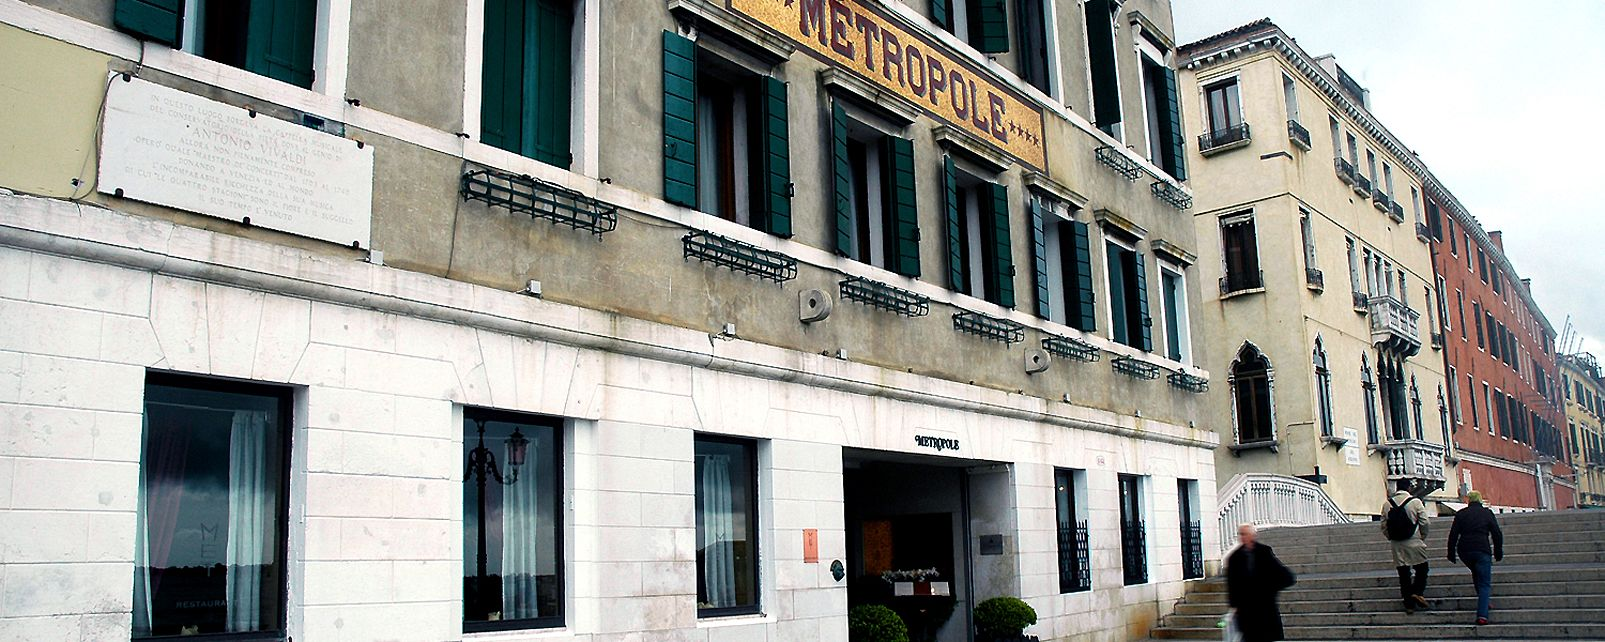 Hotel metropole venise in venice italy for Hotels venise